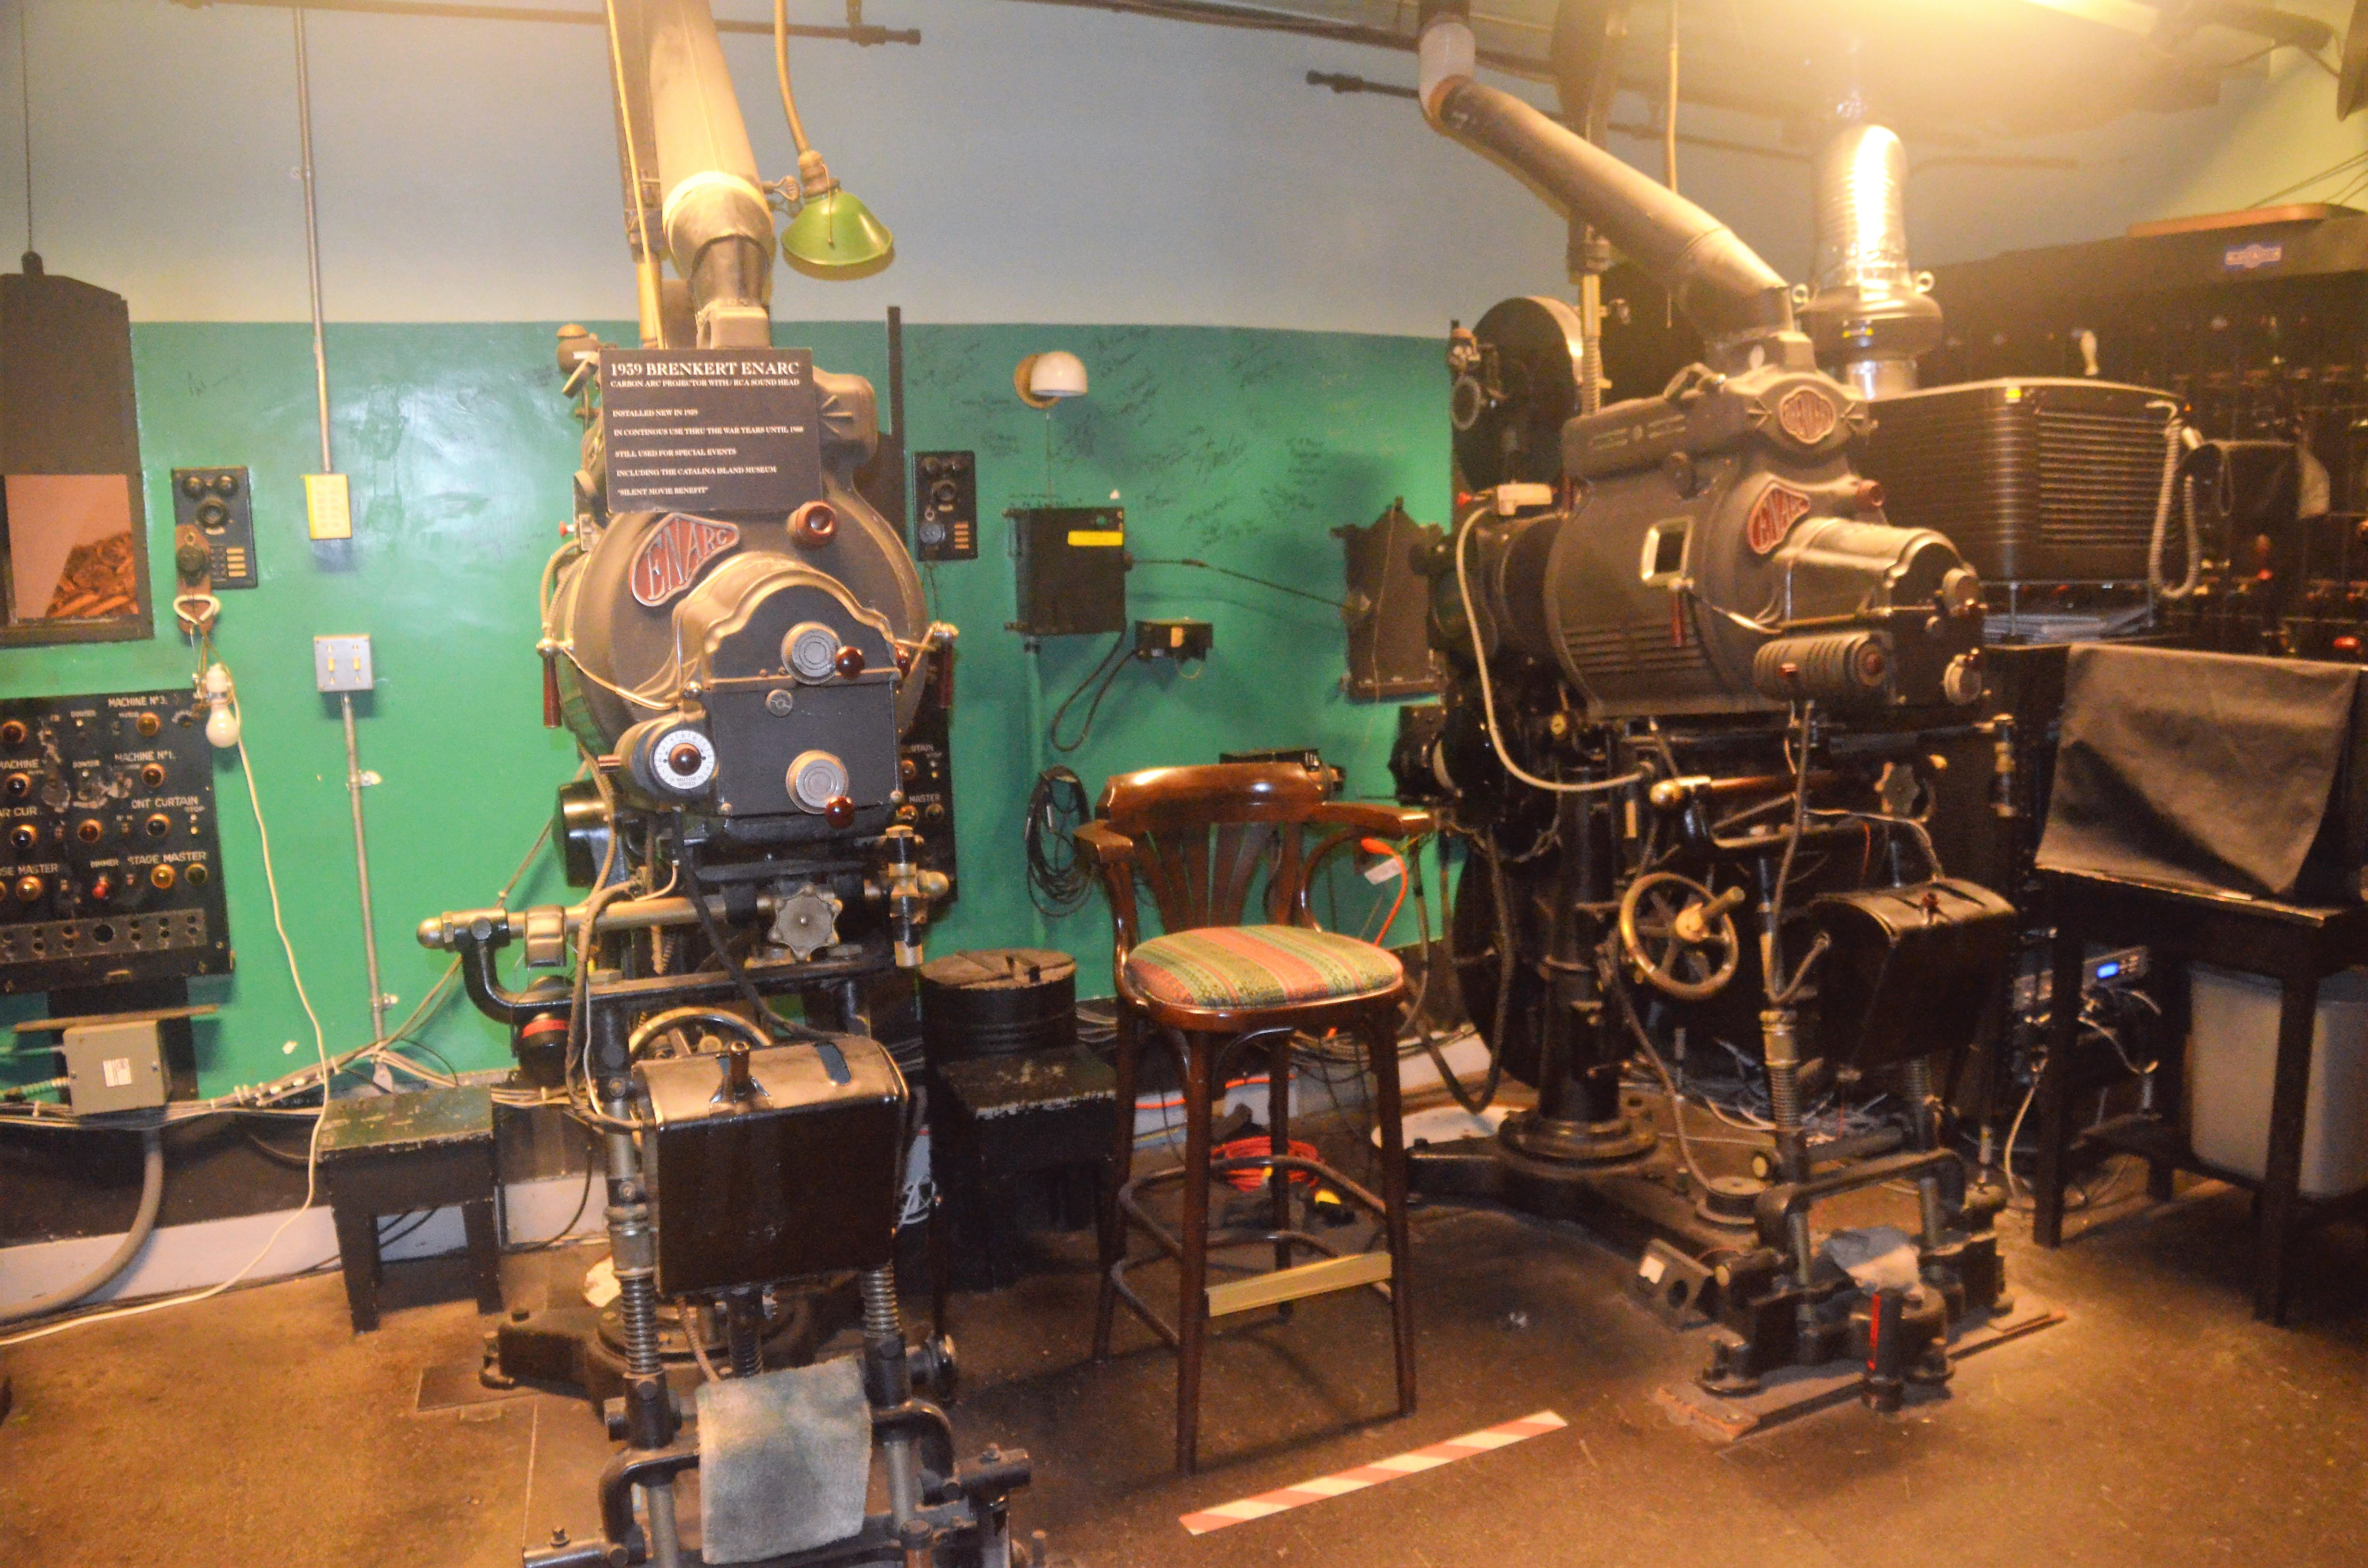 Projectors from the early 20th century, which screened silent films and some of the first talkies, can been seen during the Behind-the-Scenes tour through Avalon's iconic Casino. The well maintained landmark is still used frequently for events, and current movies are shown regularly in its nearly 100-year-old theater. Photo by Jerry Ondash